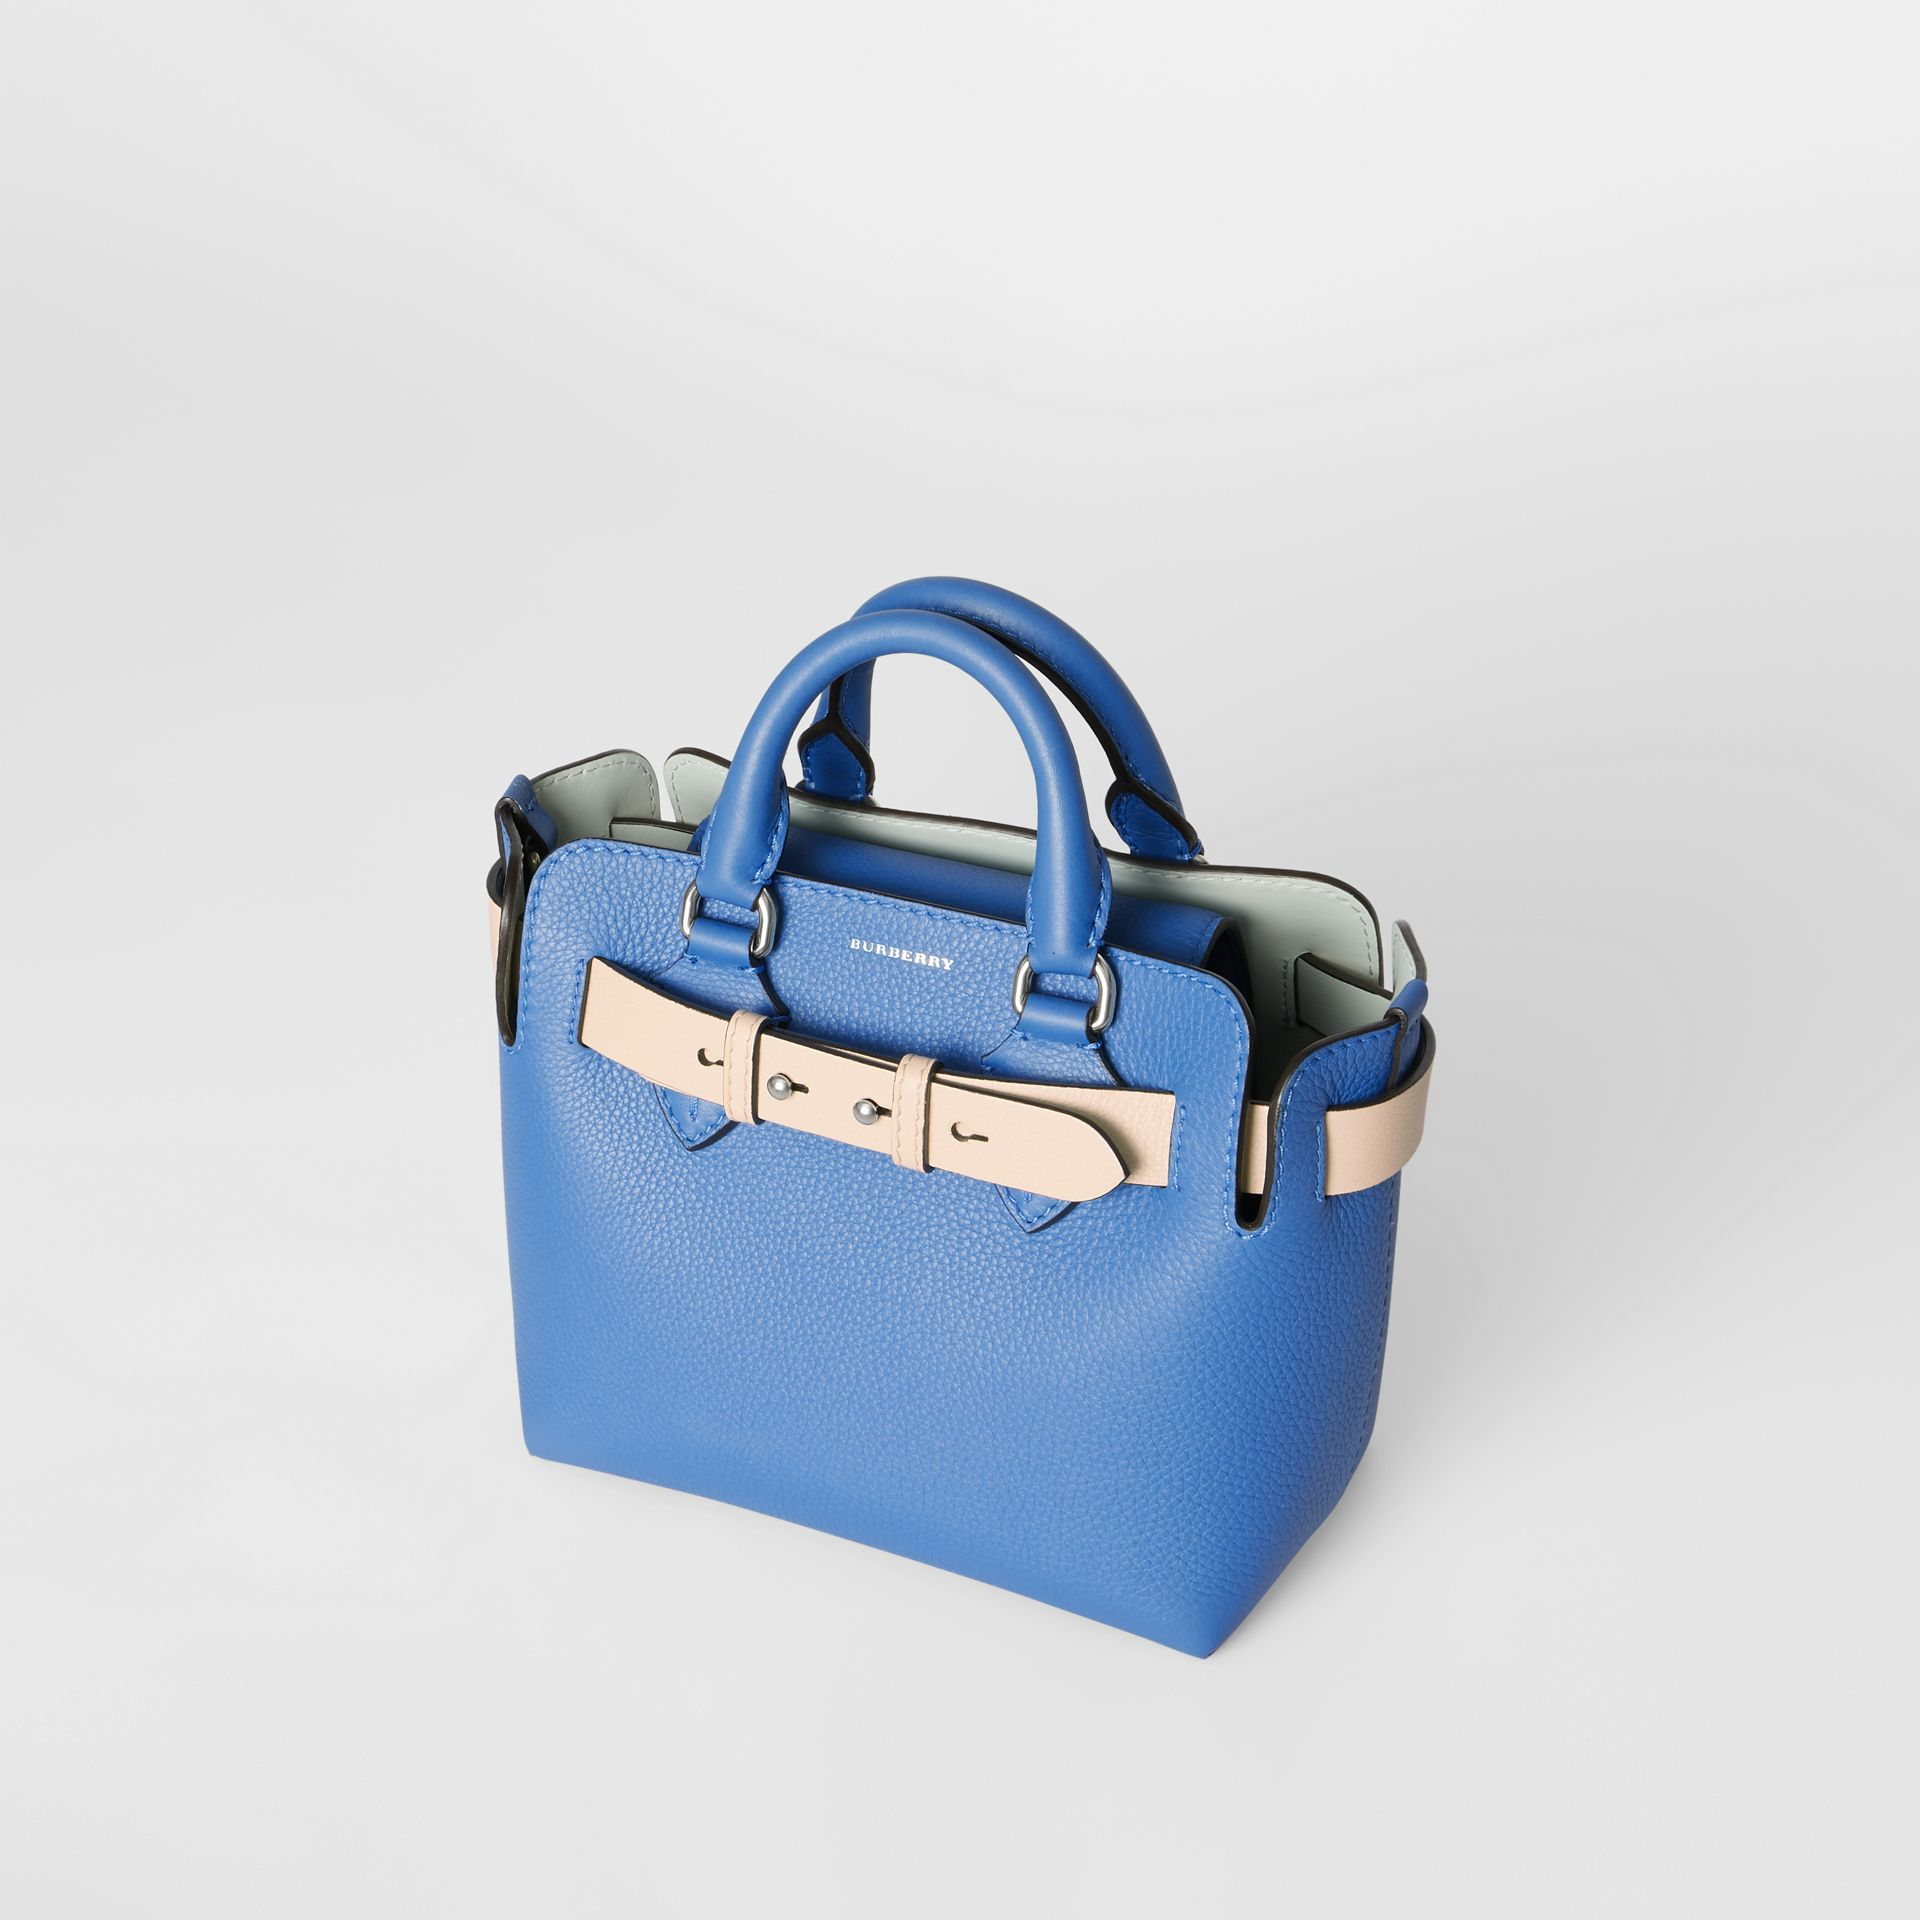 Borsa The Belt mini in pelle (Blu Ortensia) - Donna | Burberry - immagine della galleria 4